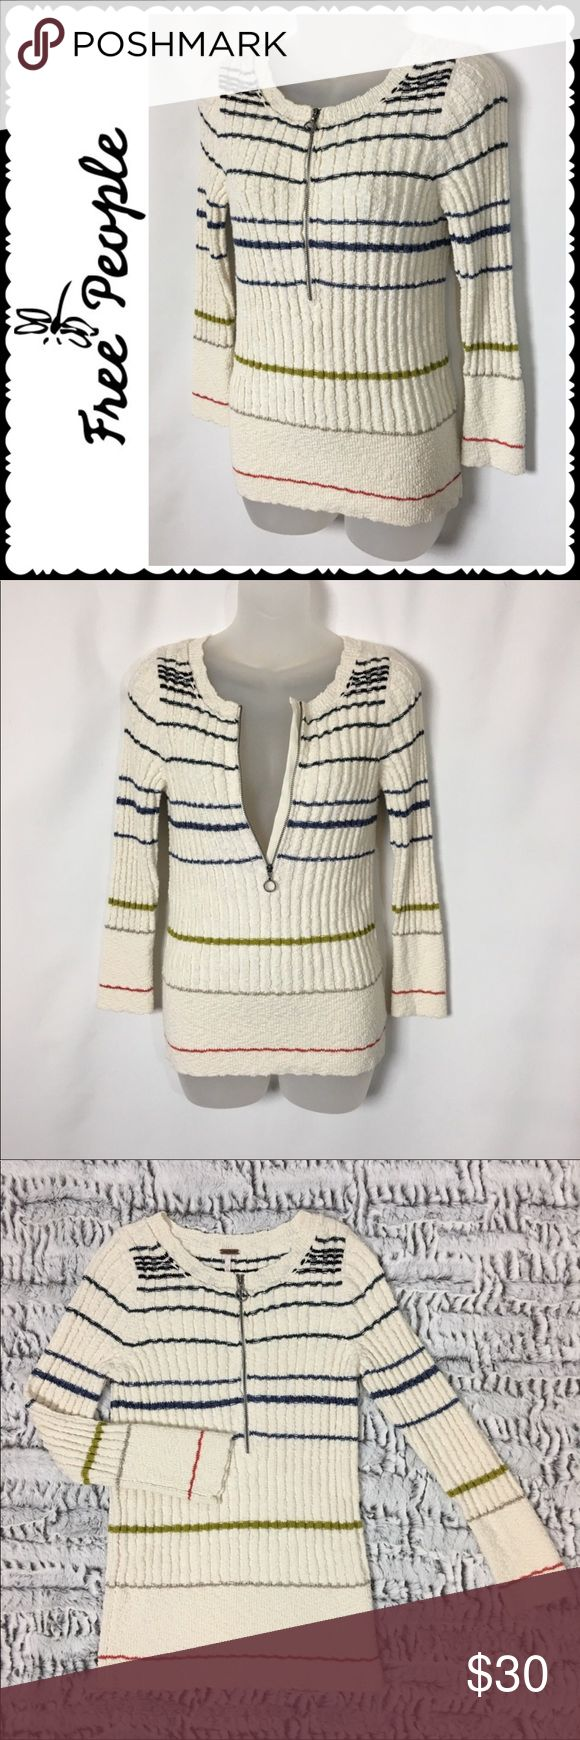 Free People Rossi Henley Half Zip Sweater M Free people Rossi Henley straight half zip sweater Size medium Great condition Bust measures 32 inches Length is 25 inches  Material has a lot of stretch Free People Sweaters